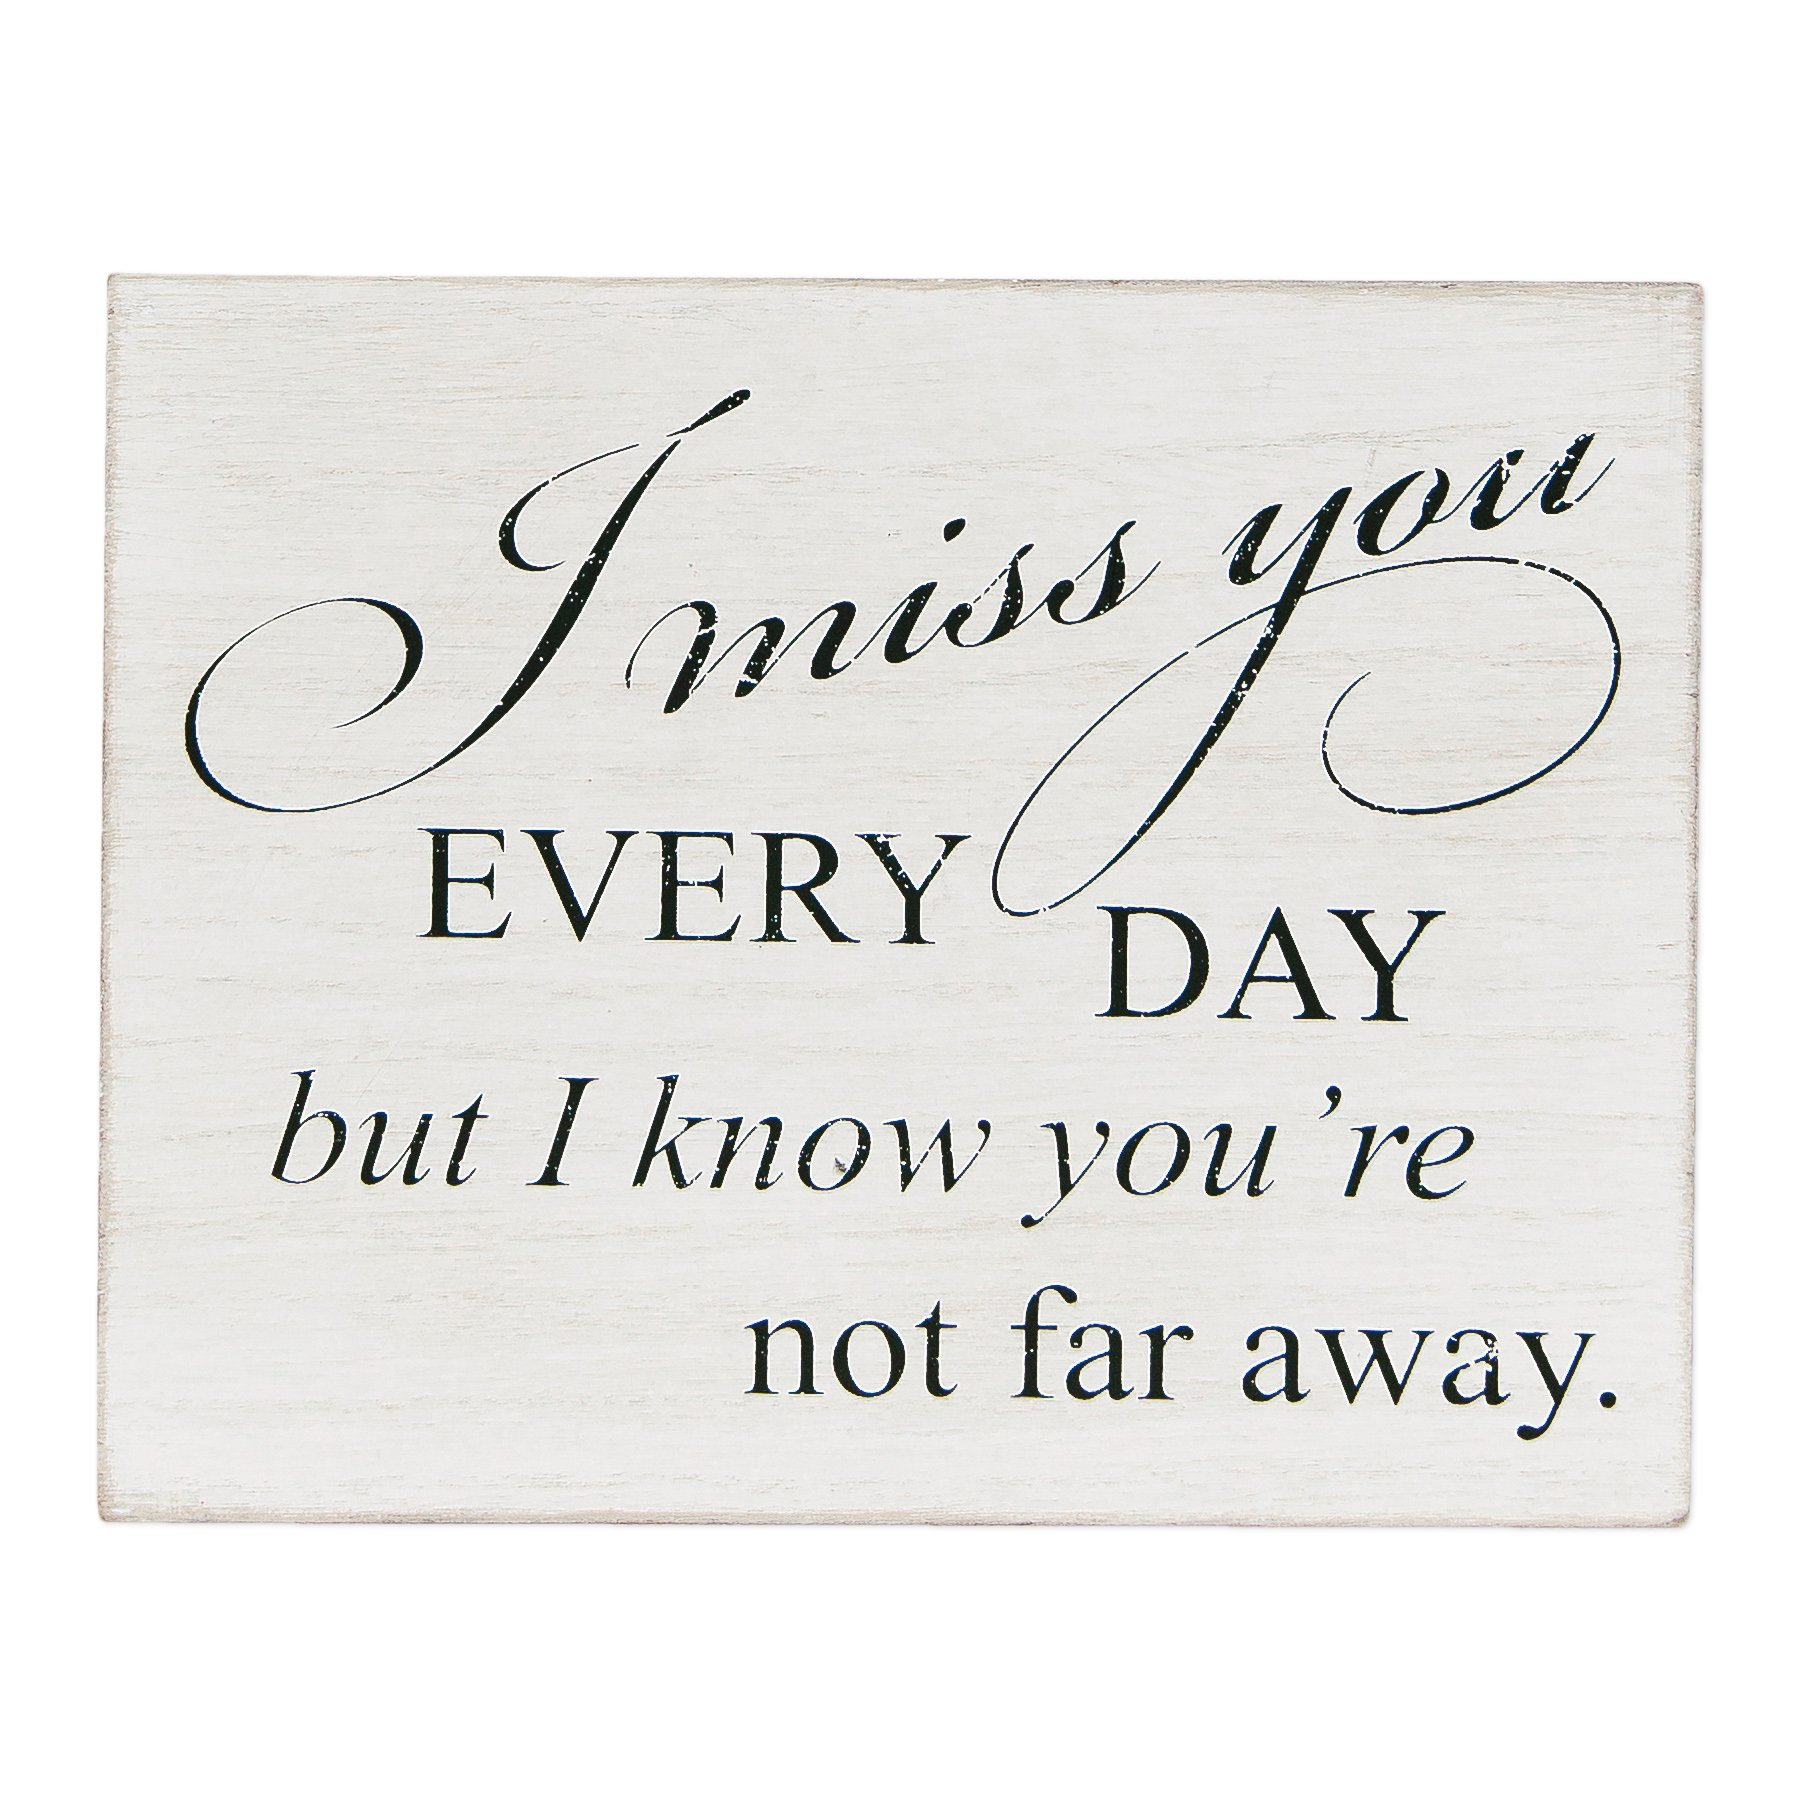 Miss You Every Day Not Far Away White 9 x 7 Inch Wood Hanging Wall Plaque Sign